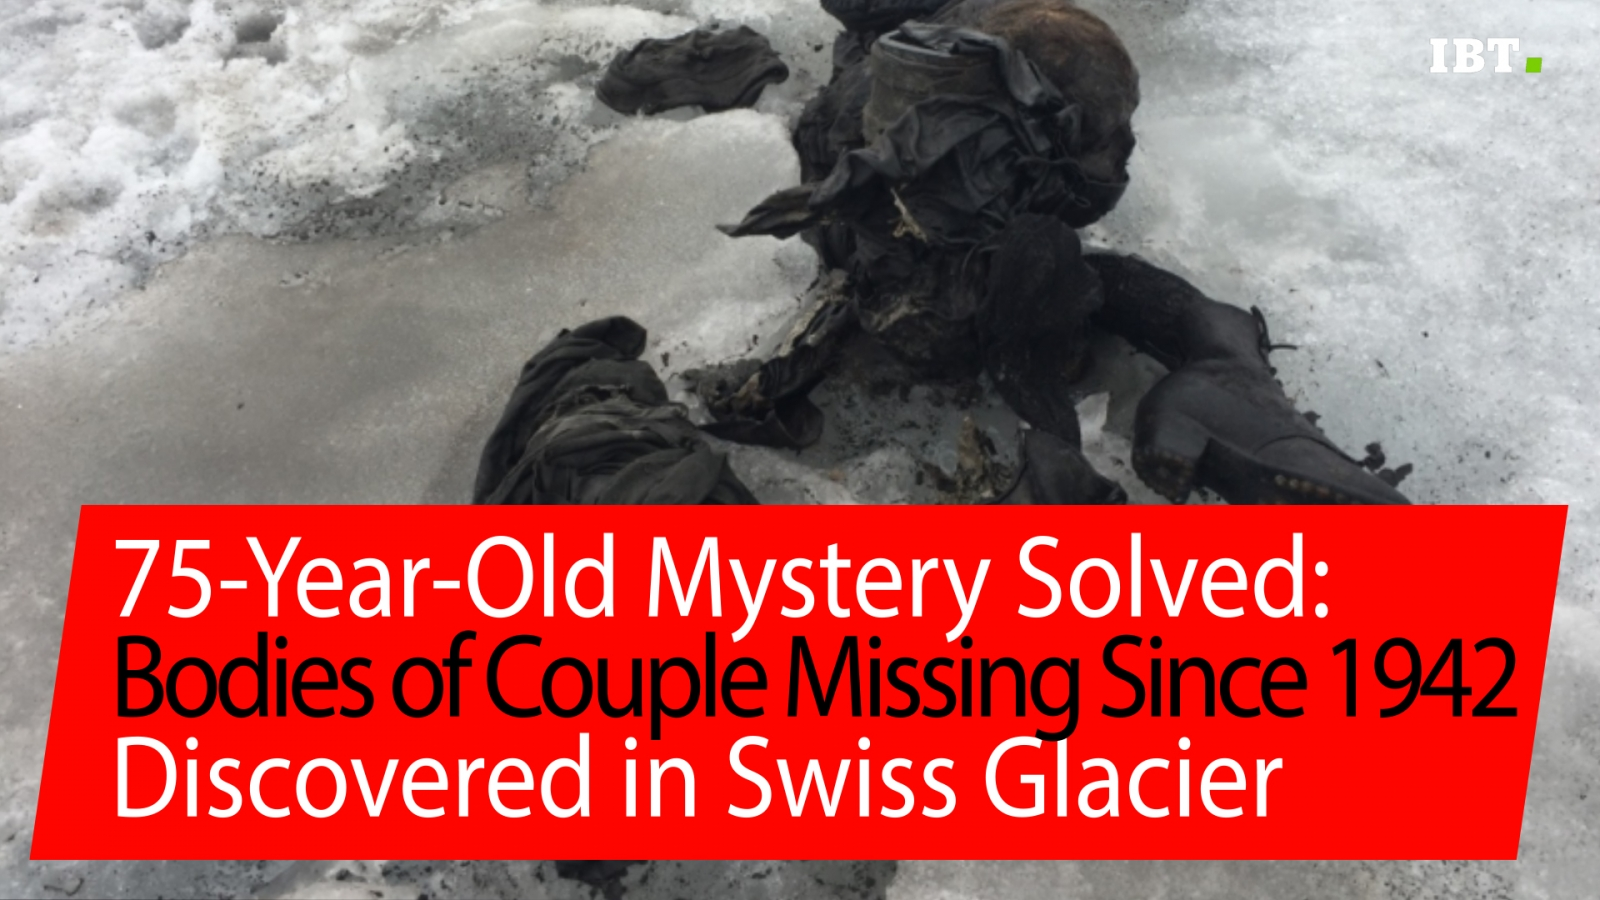 Frozen bodies of Swiss couple missing for 75 years found on Alps glacier